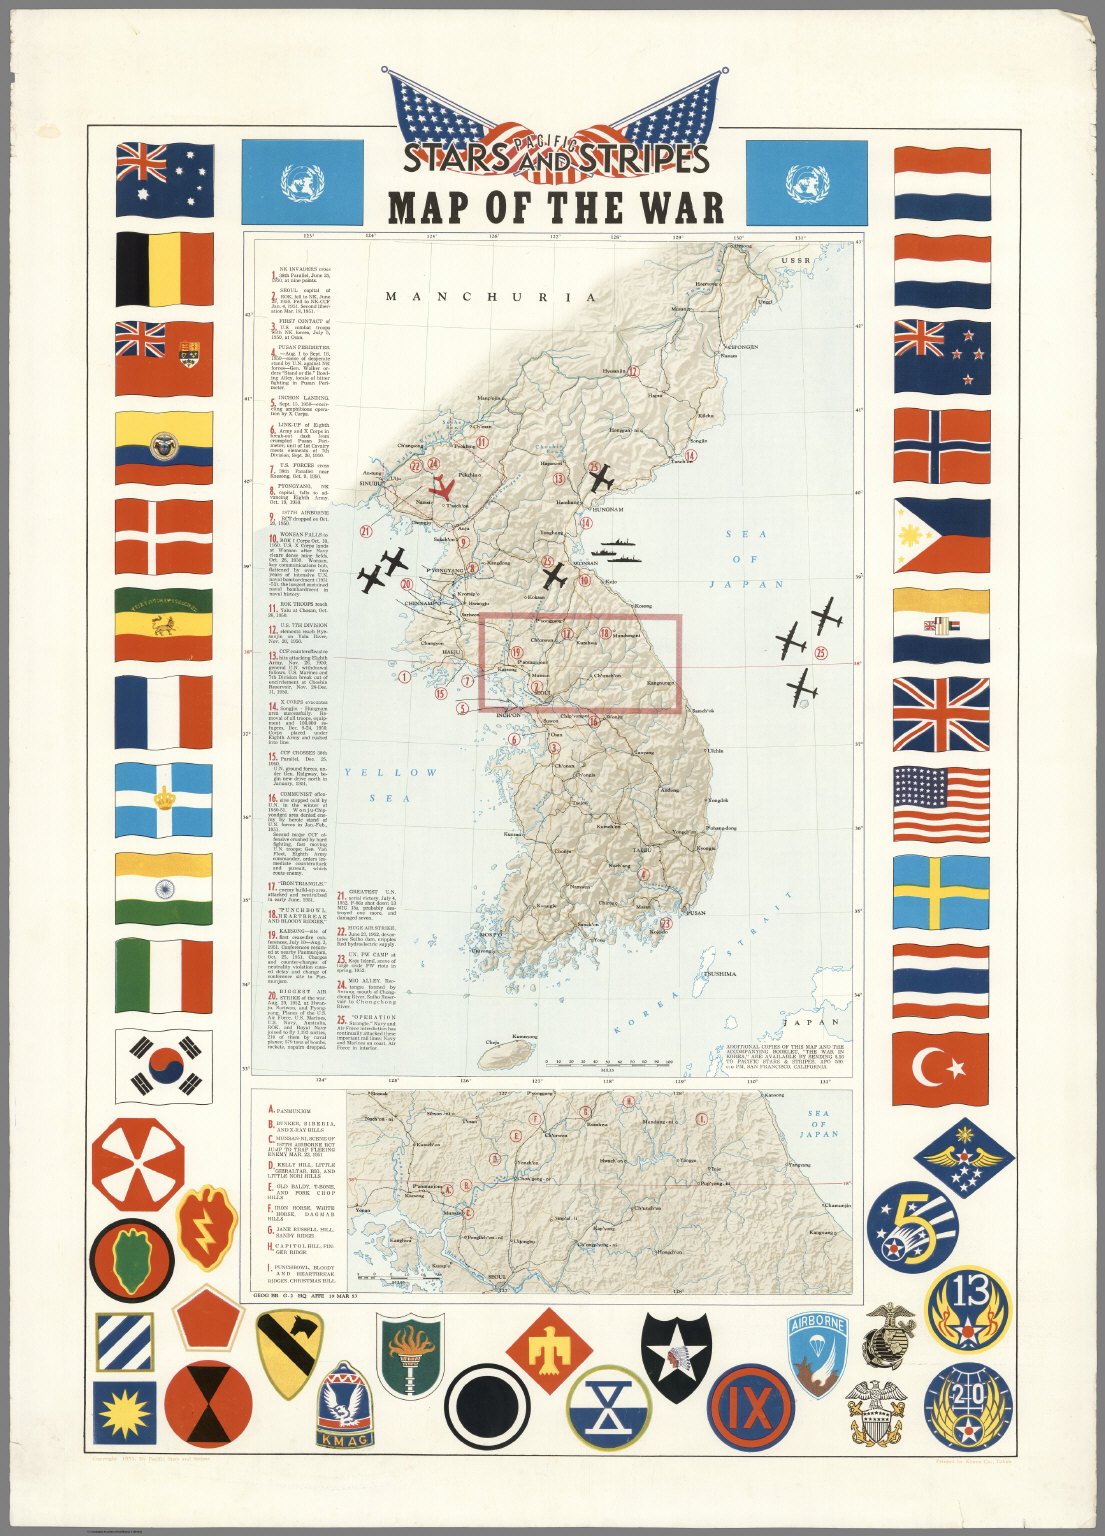 Pacific Stars and Stripes Map of the Korean War Military Insignia Features Print